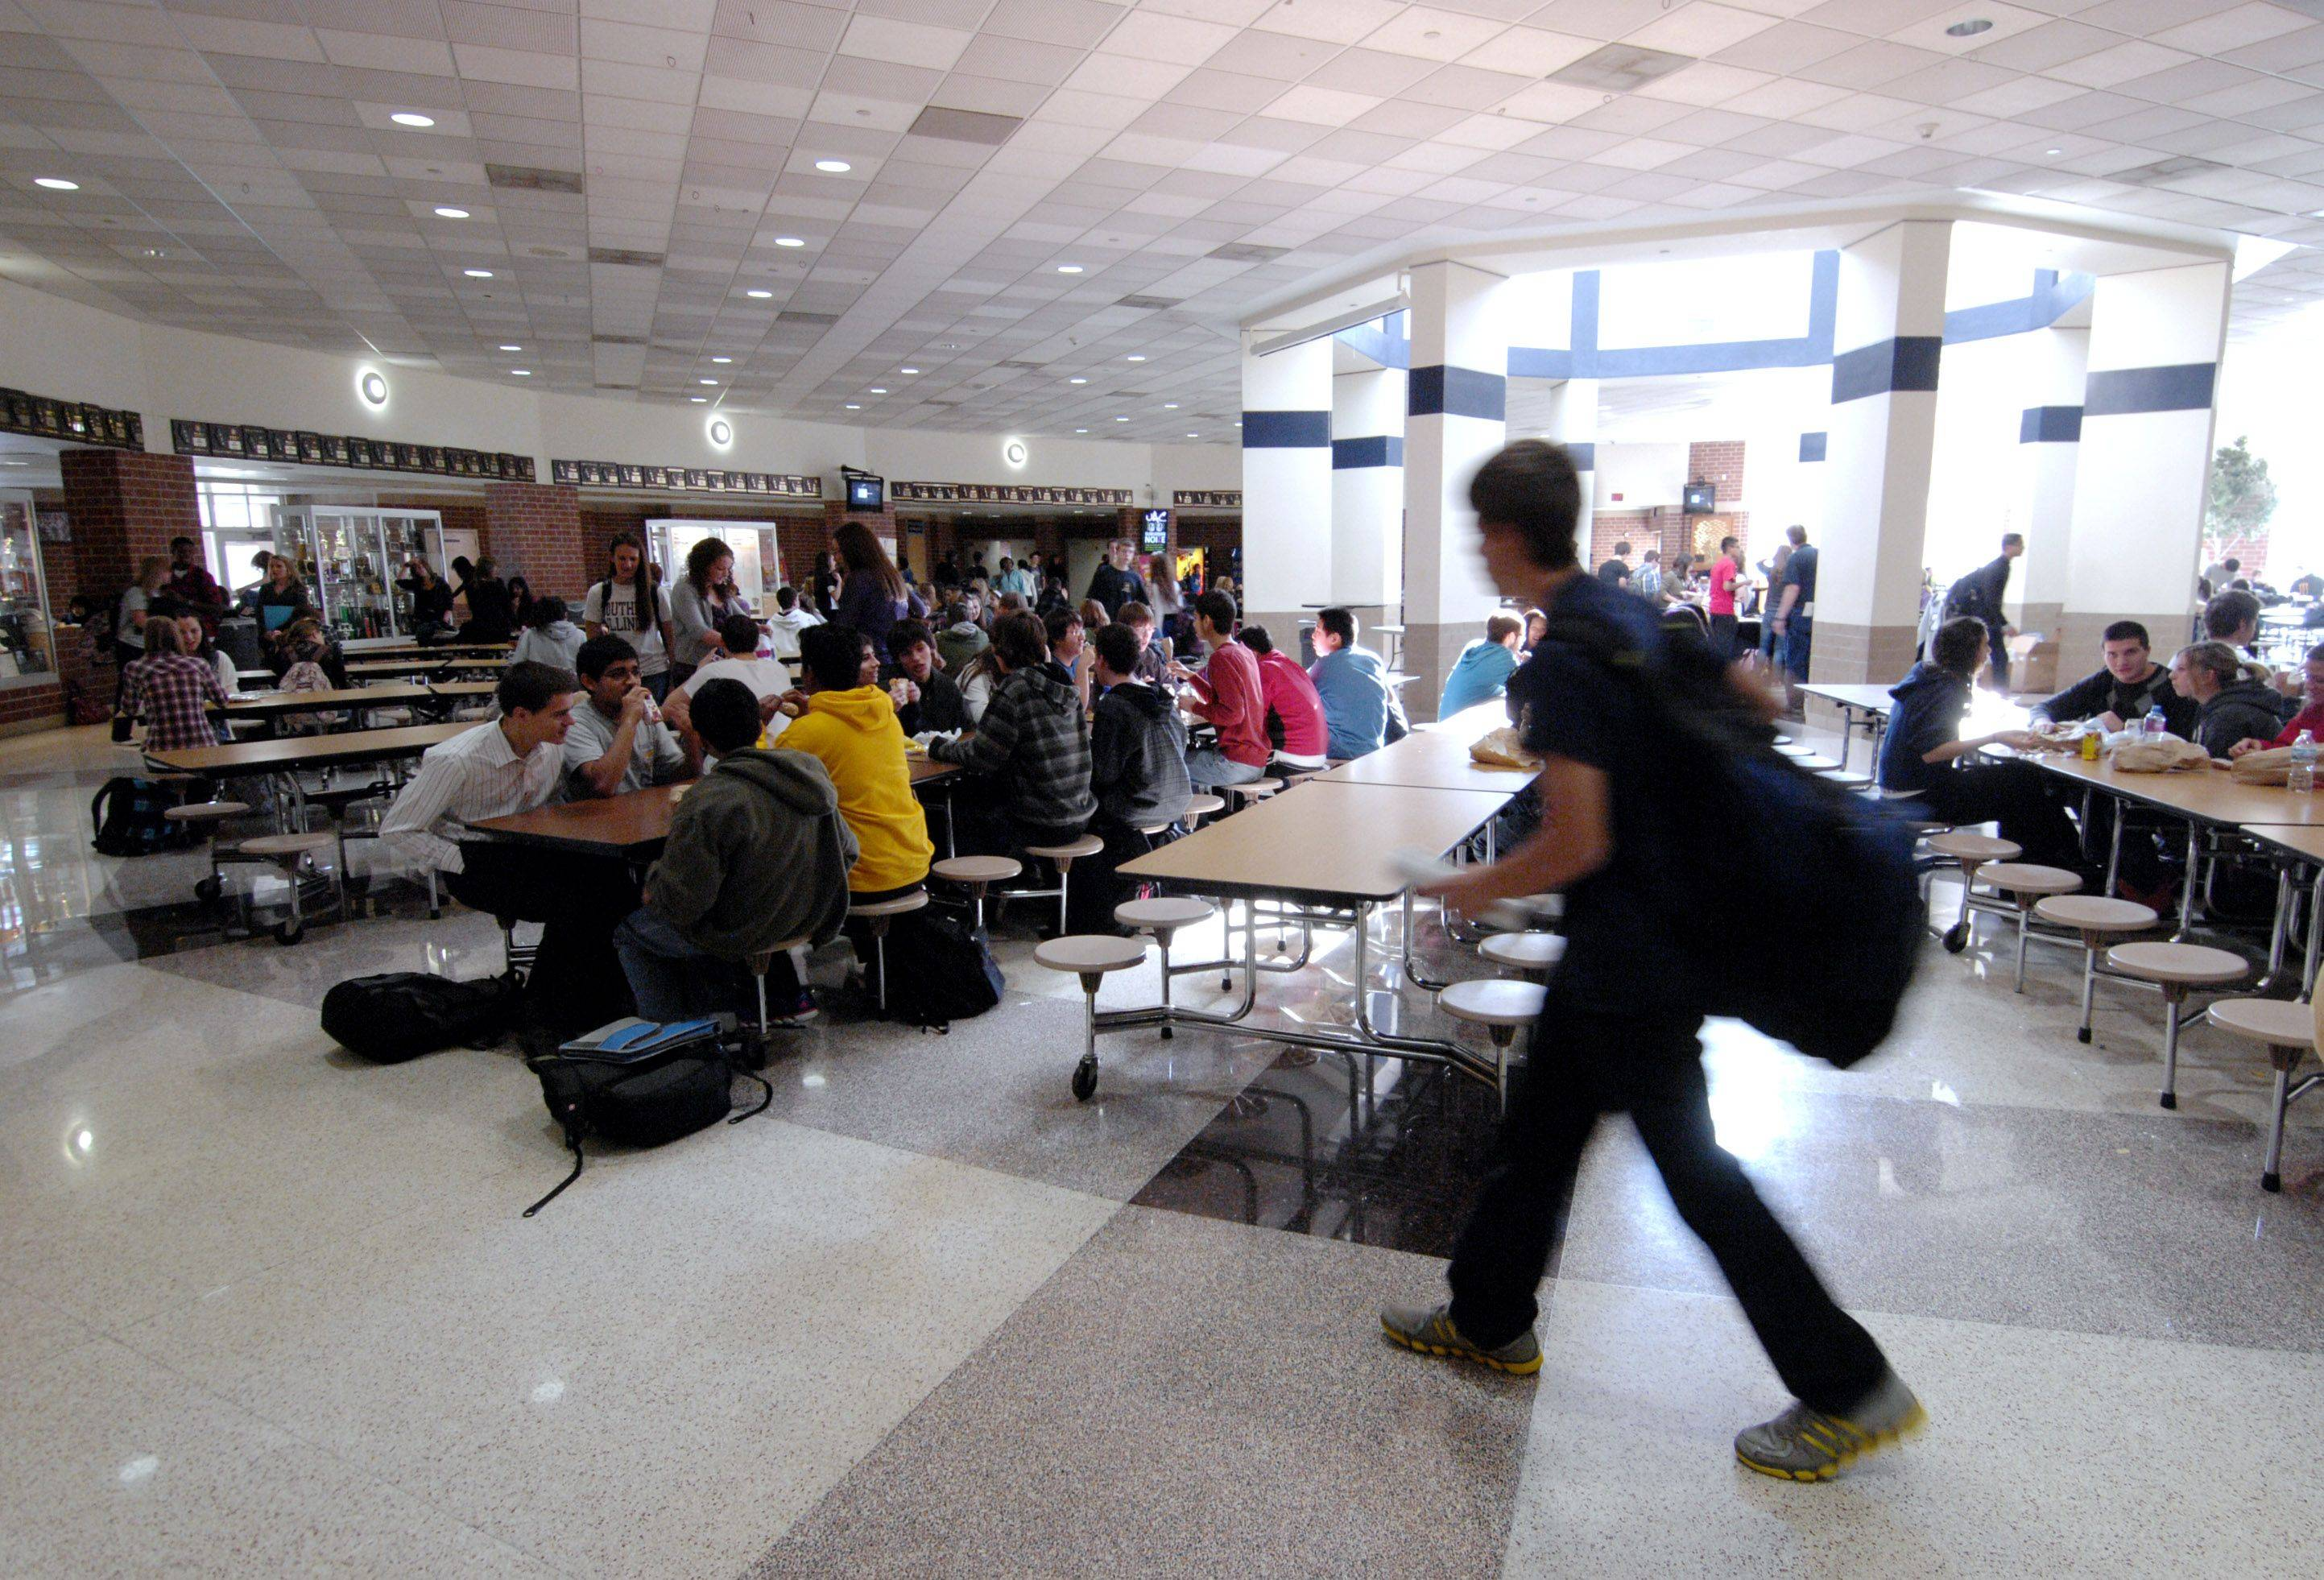 Eating lunch is one of several choices Neuqua Valley High School students have when deciding what to do during their option period.